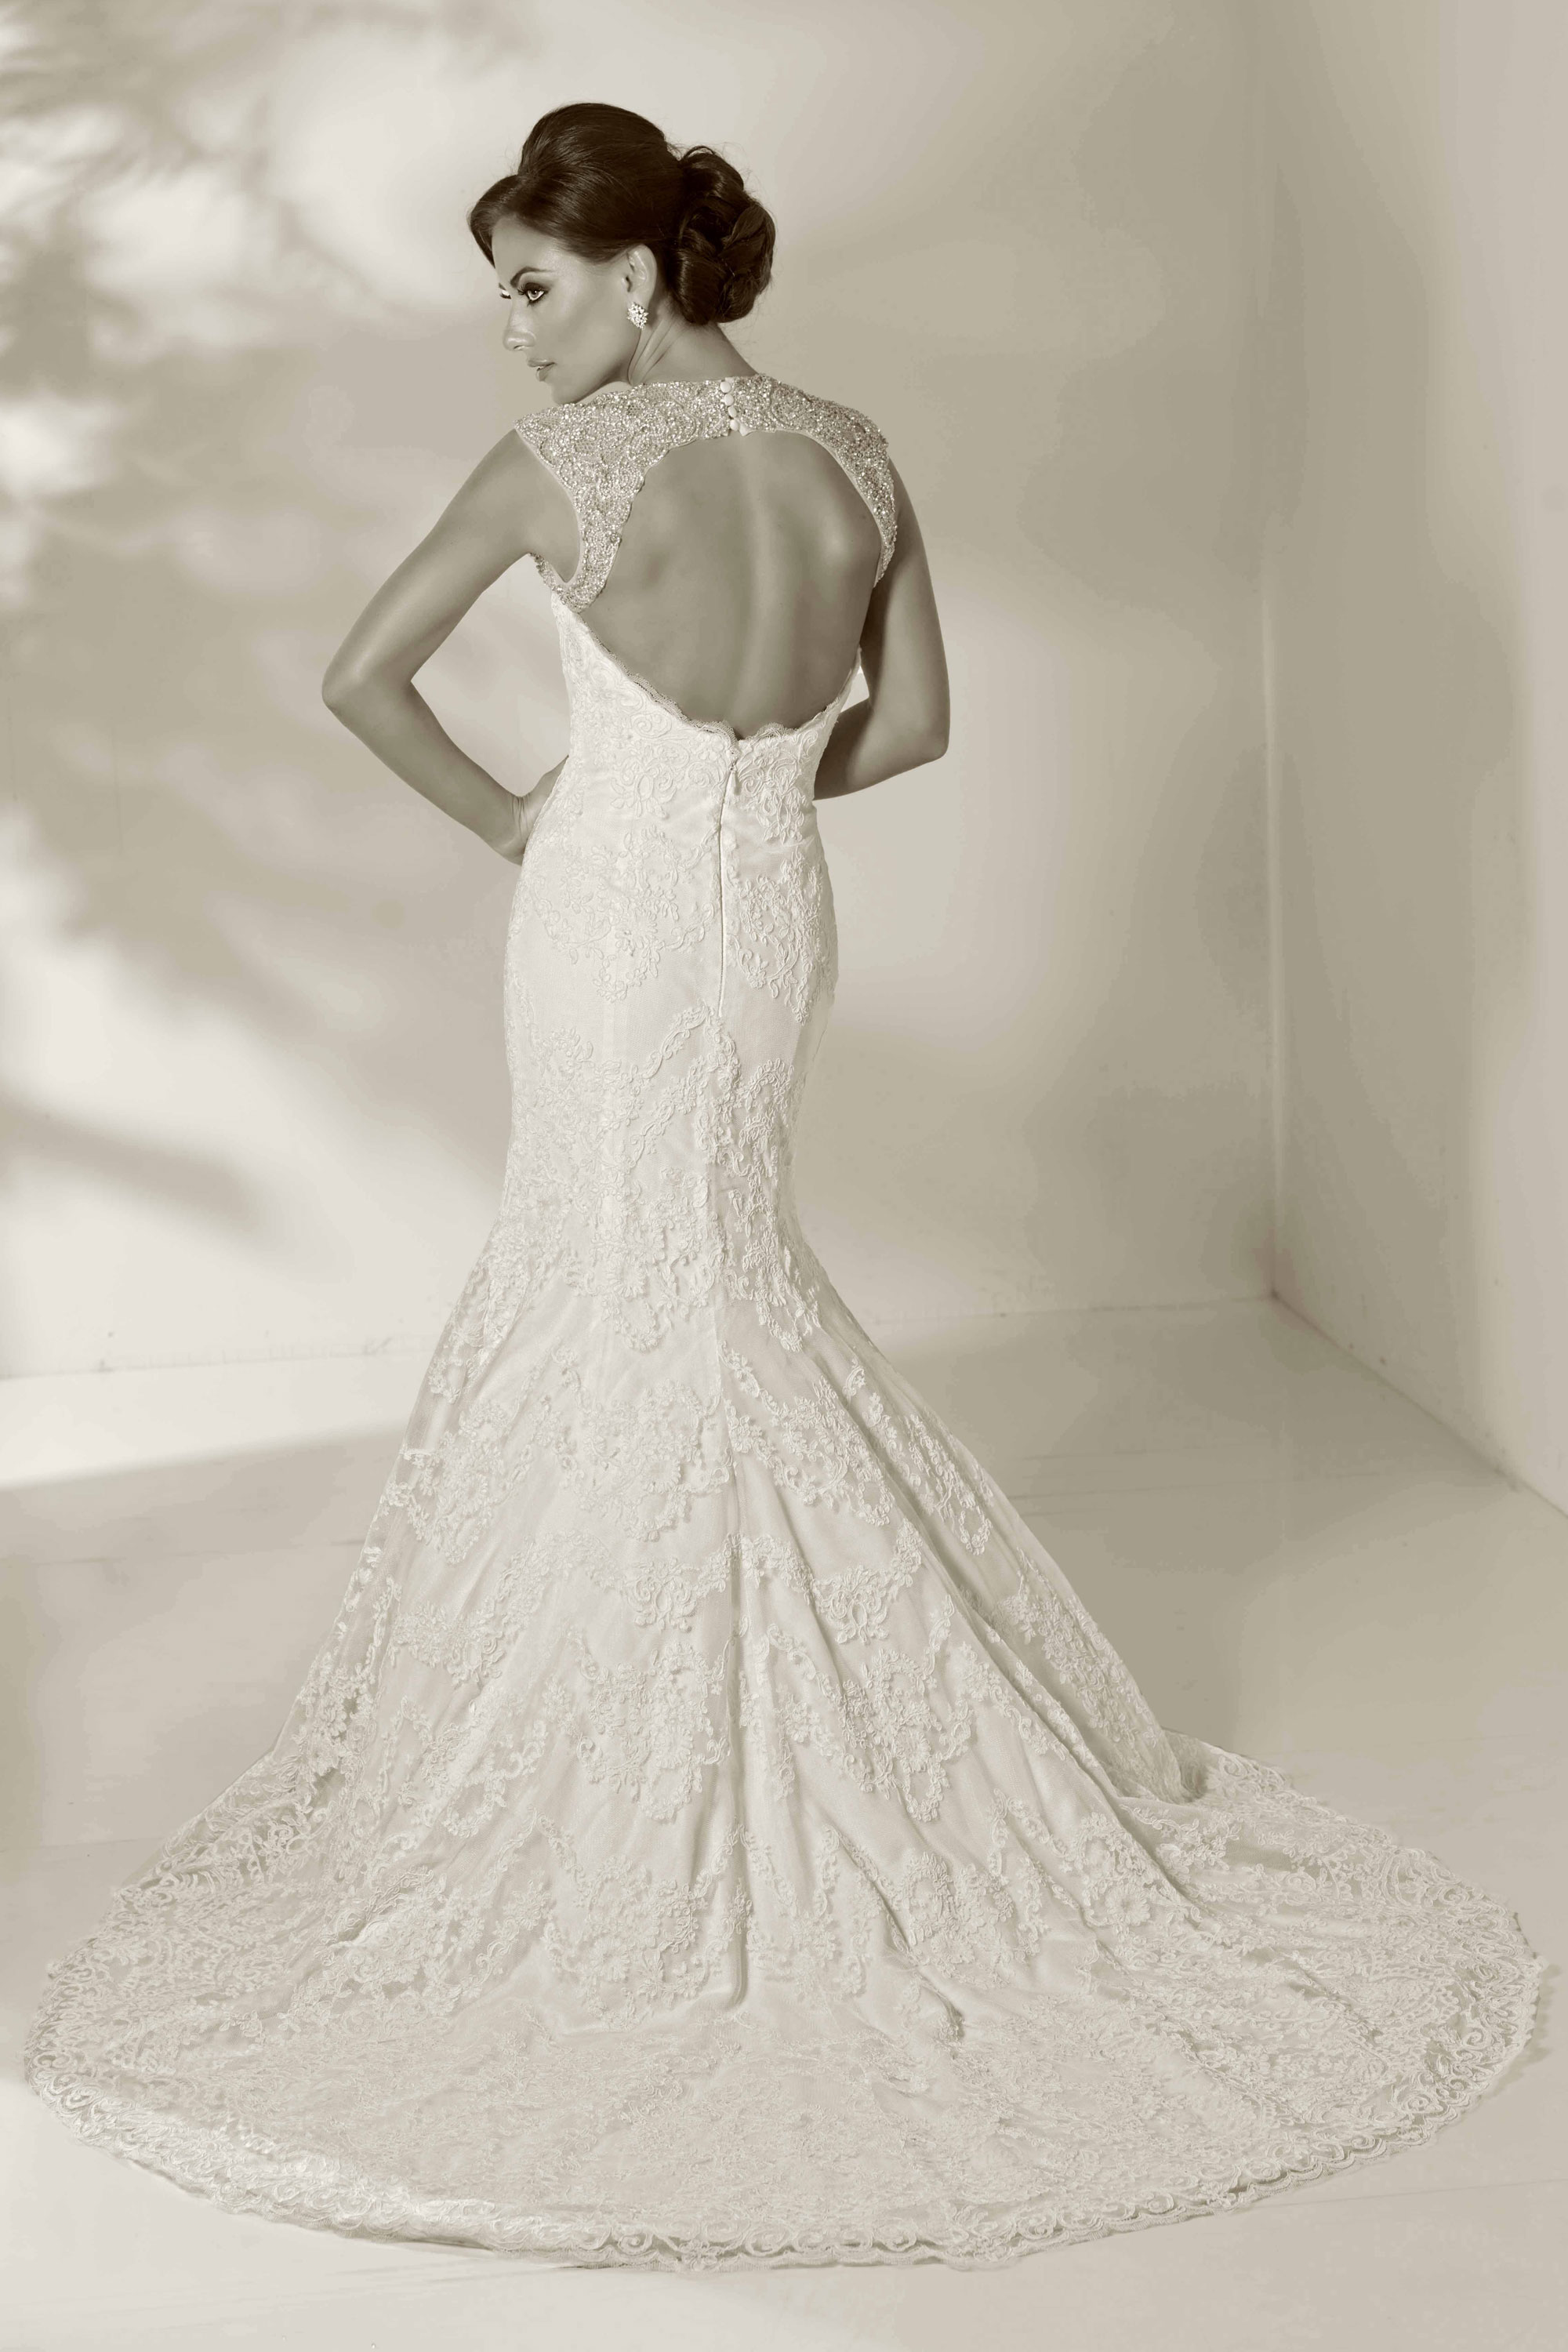 cristiano-lucci-wedding-dresses-4-01052014